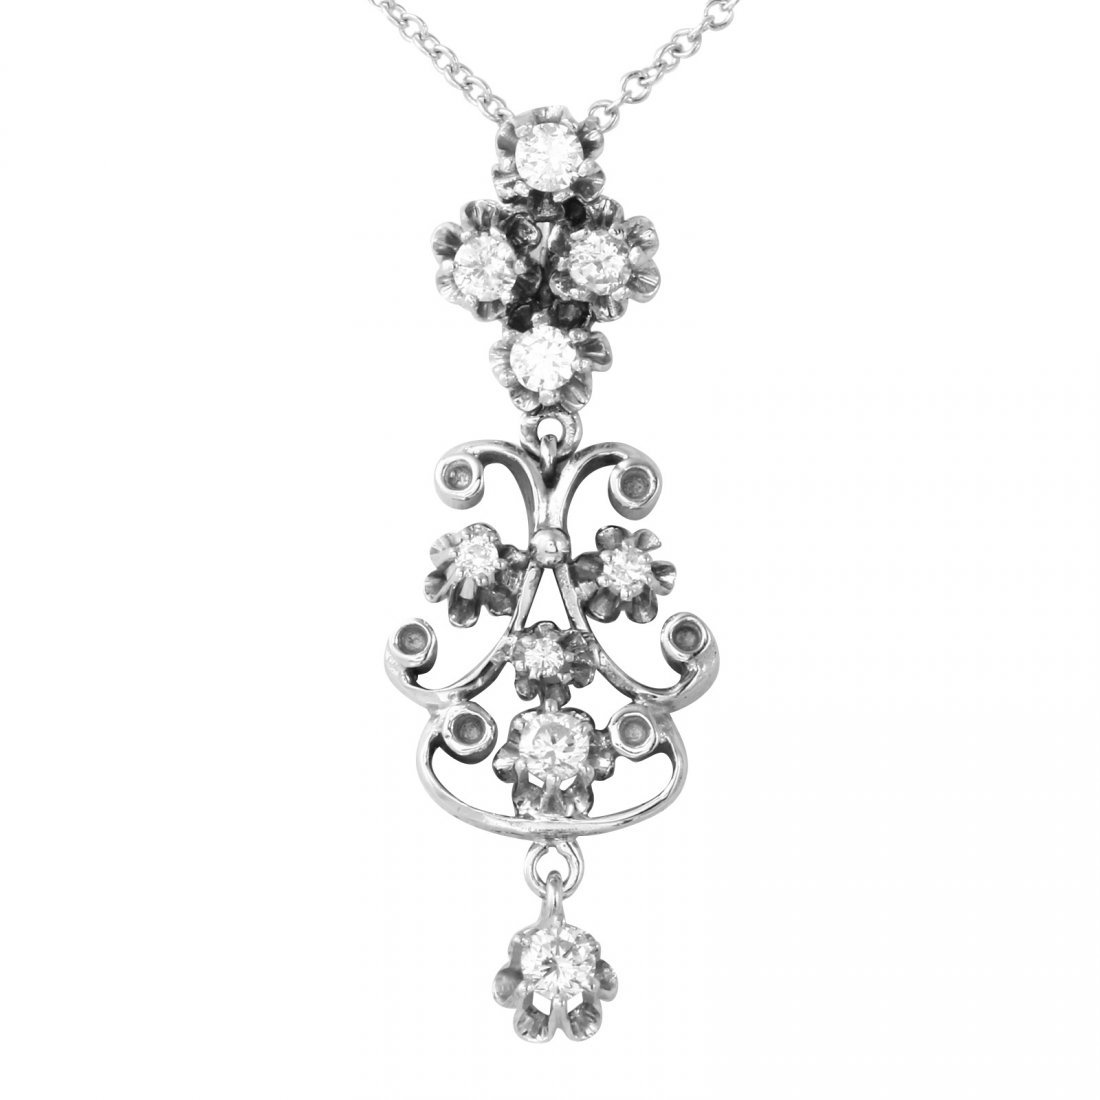 14KT White Gold Diamond Pendant and Chain